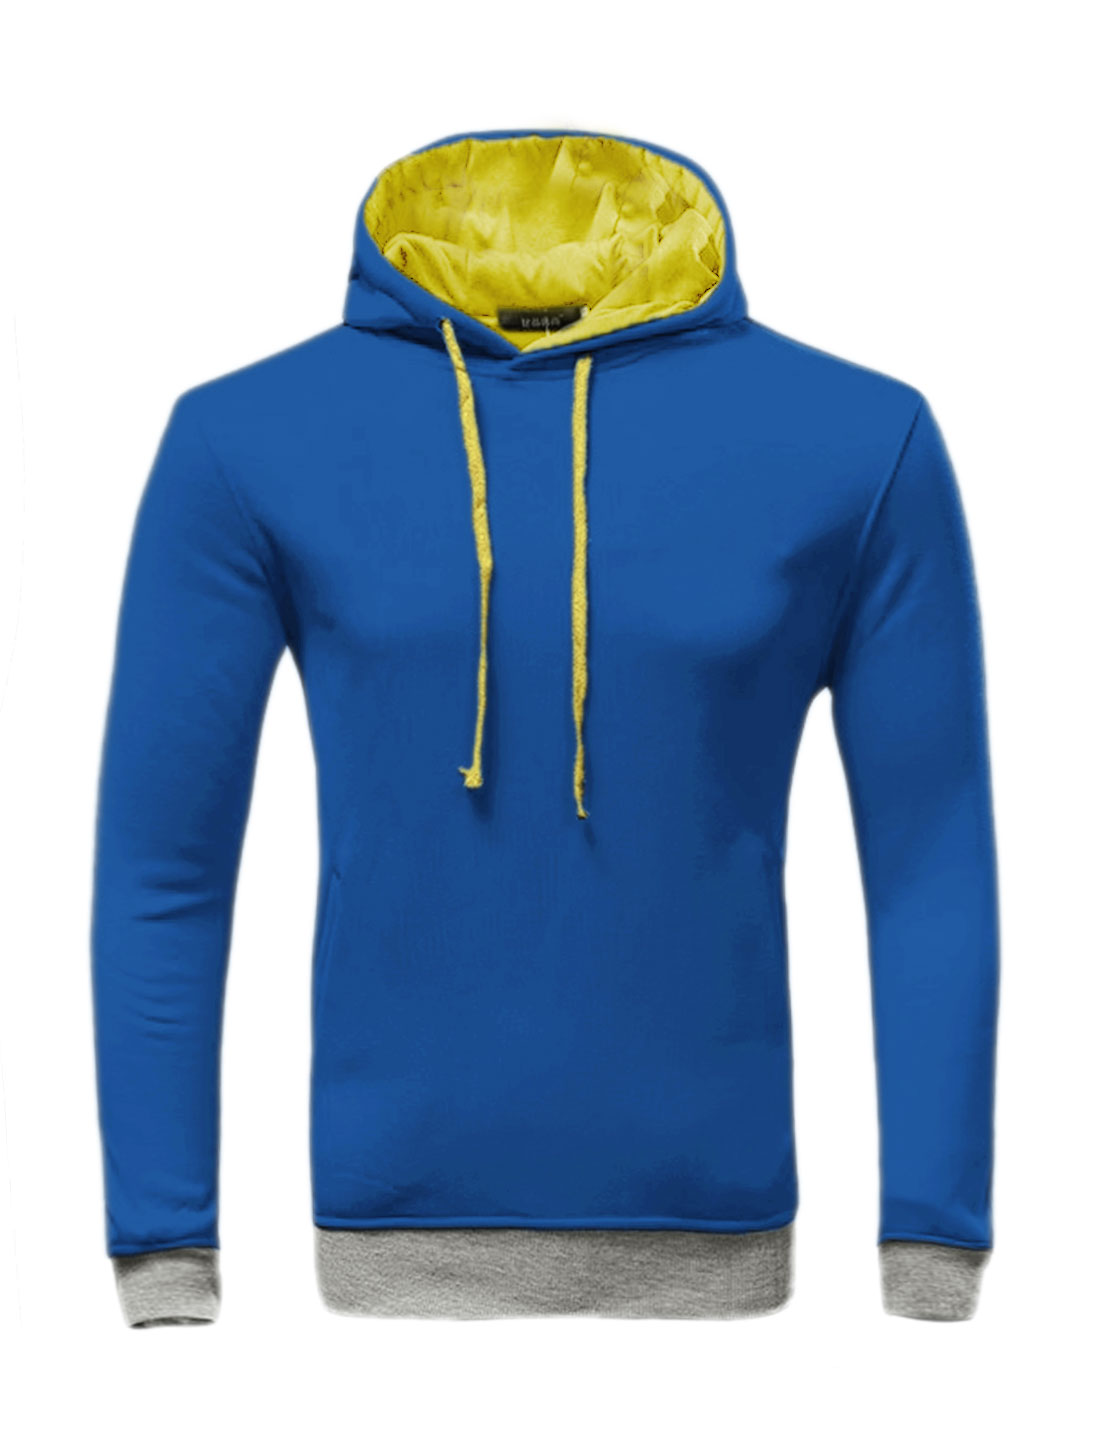 Men Slant Pockets Contrast Color Drawstring Slim Fit Hoodie Blue Yellow M